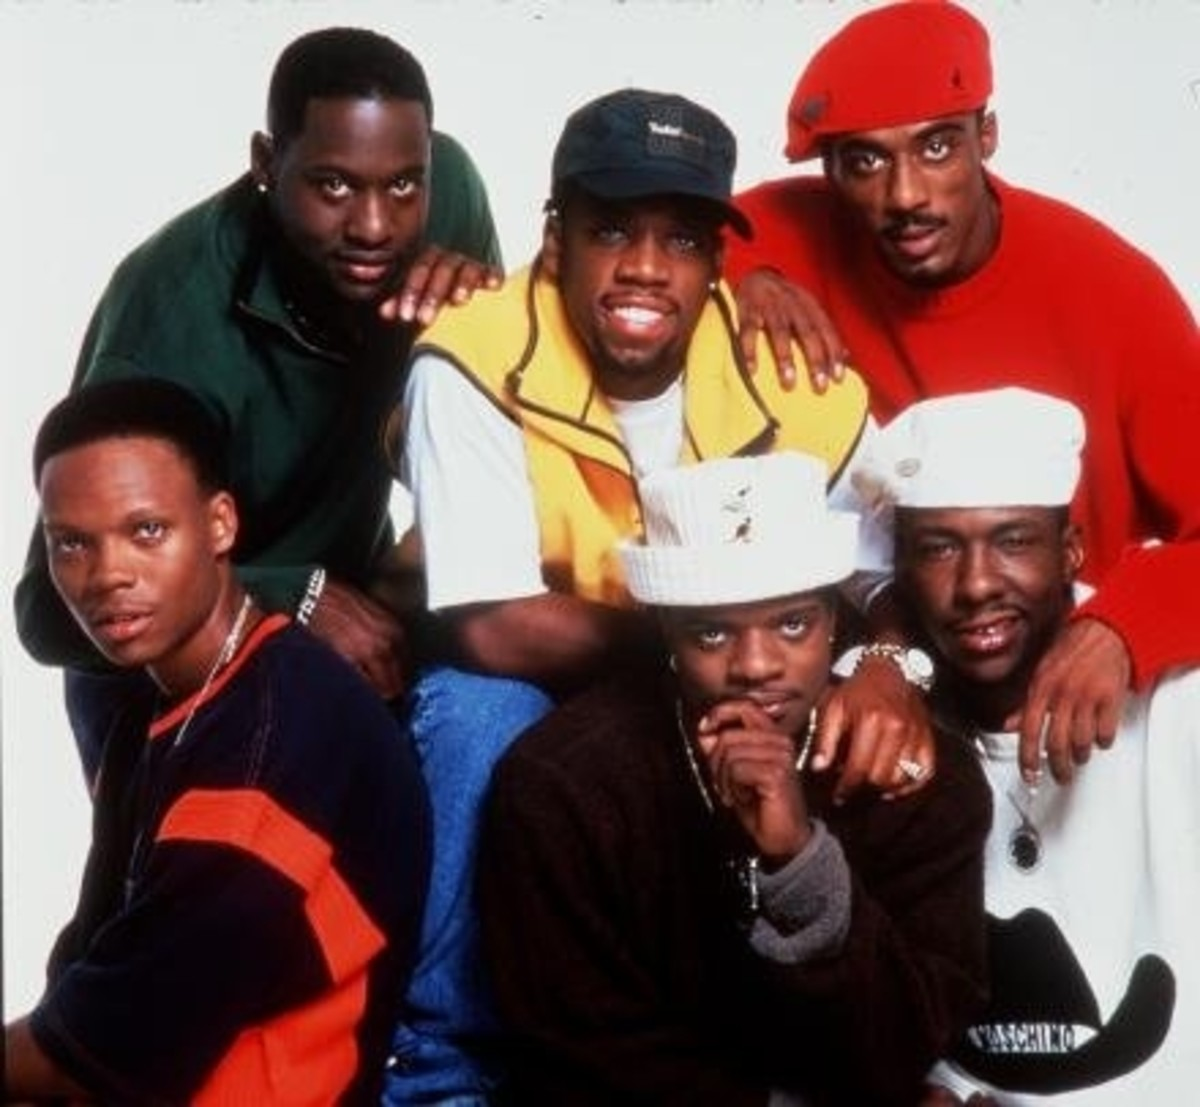 new-edition-the-most-influential-boy-band-of-the-modern-era